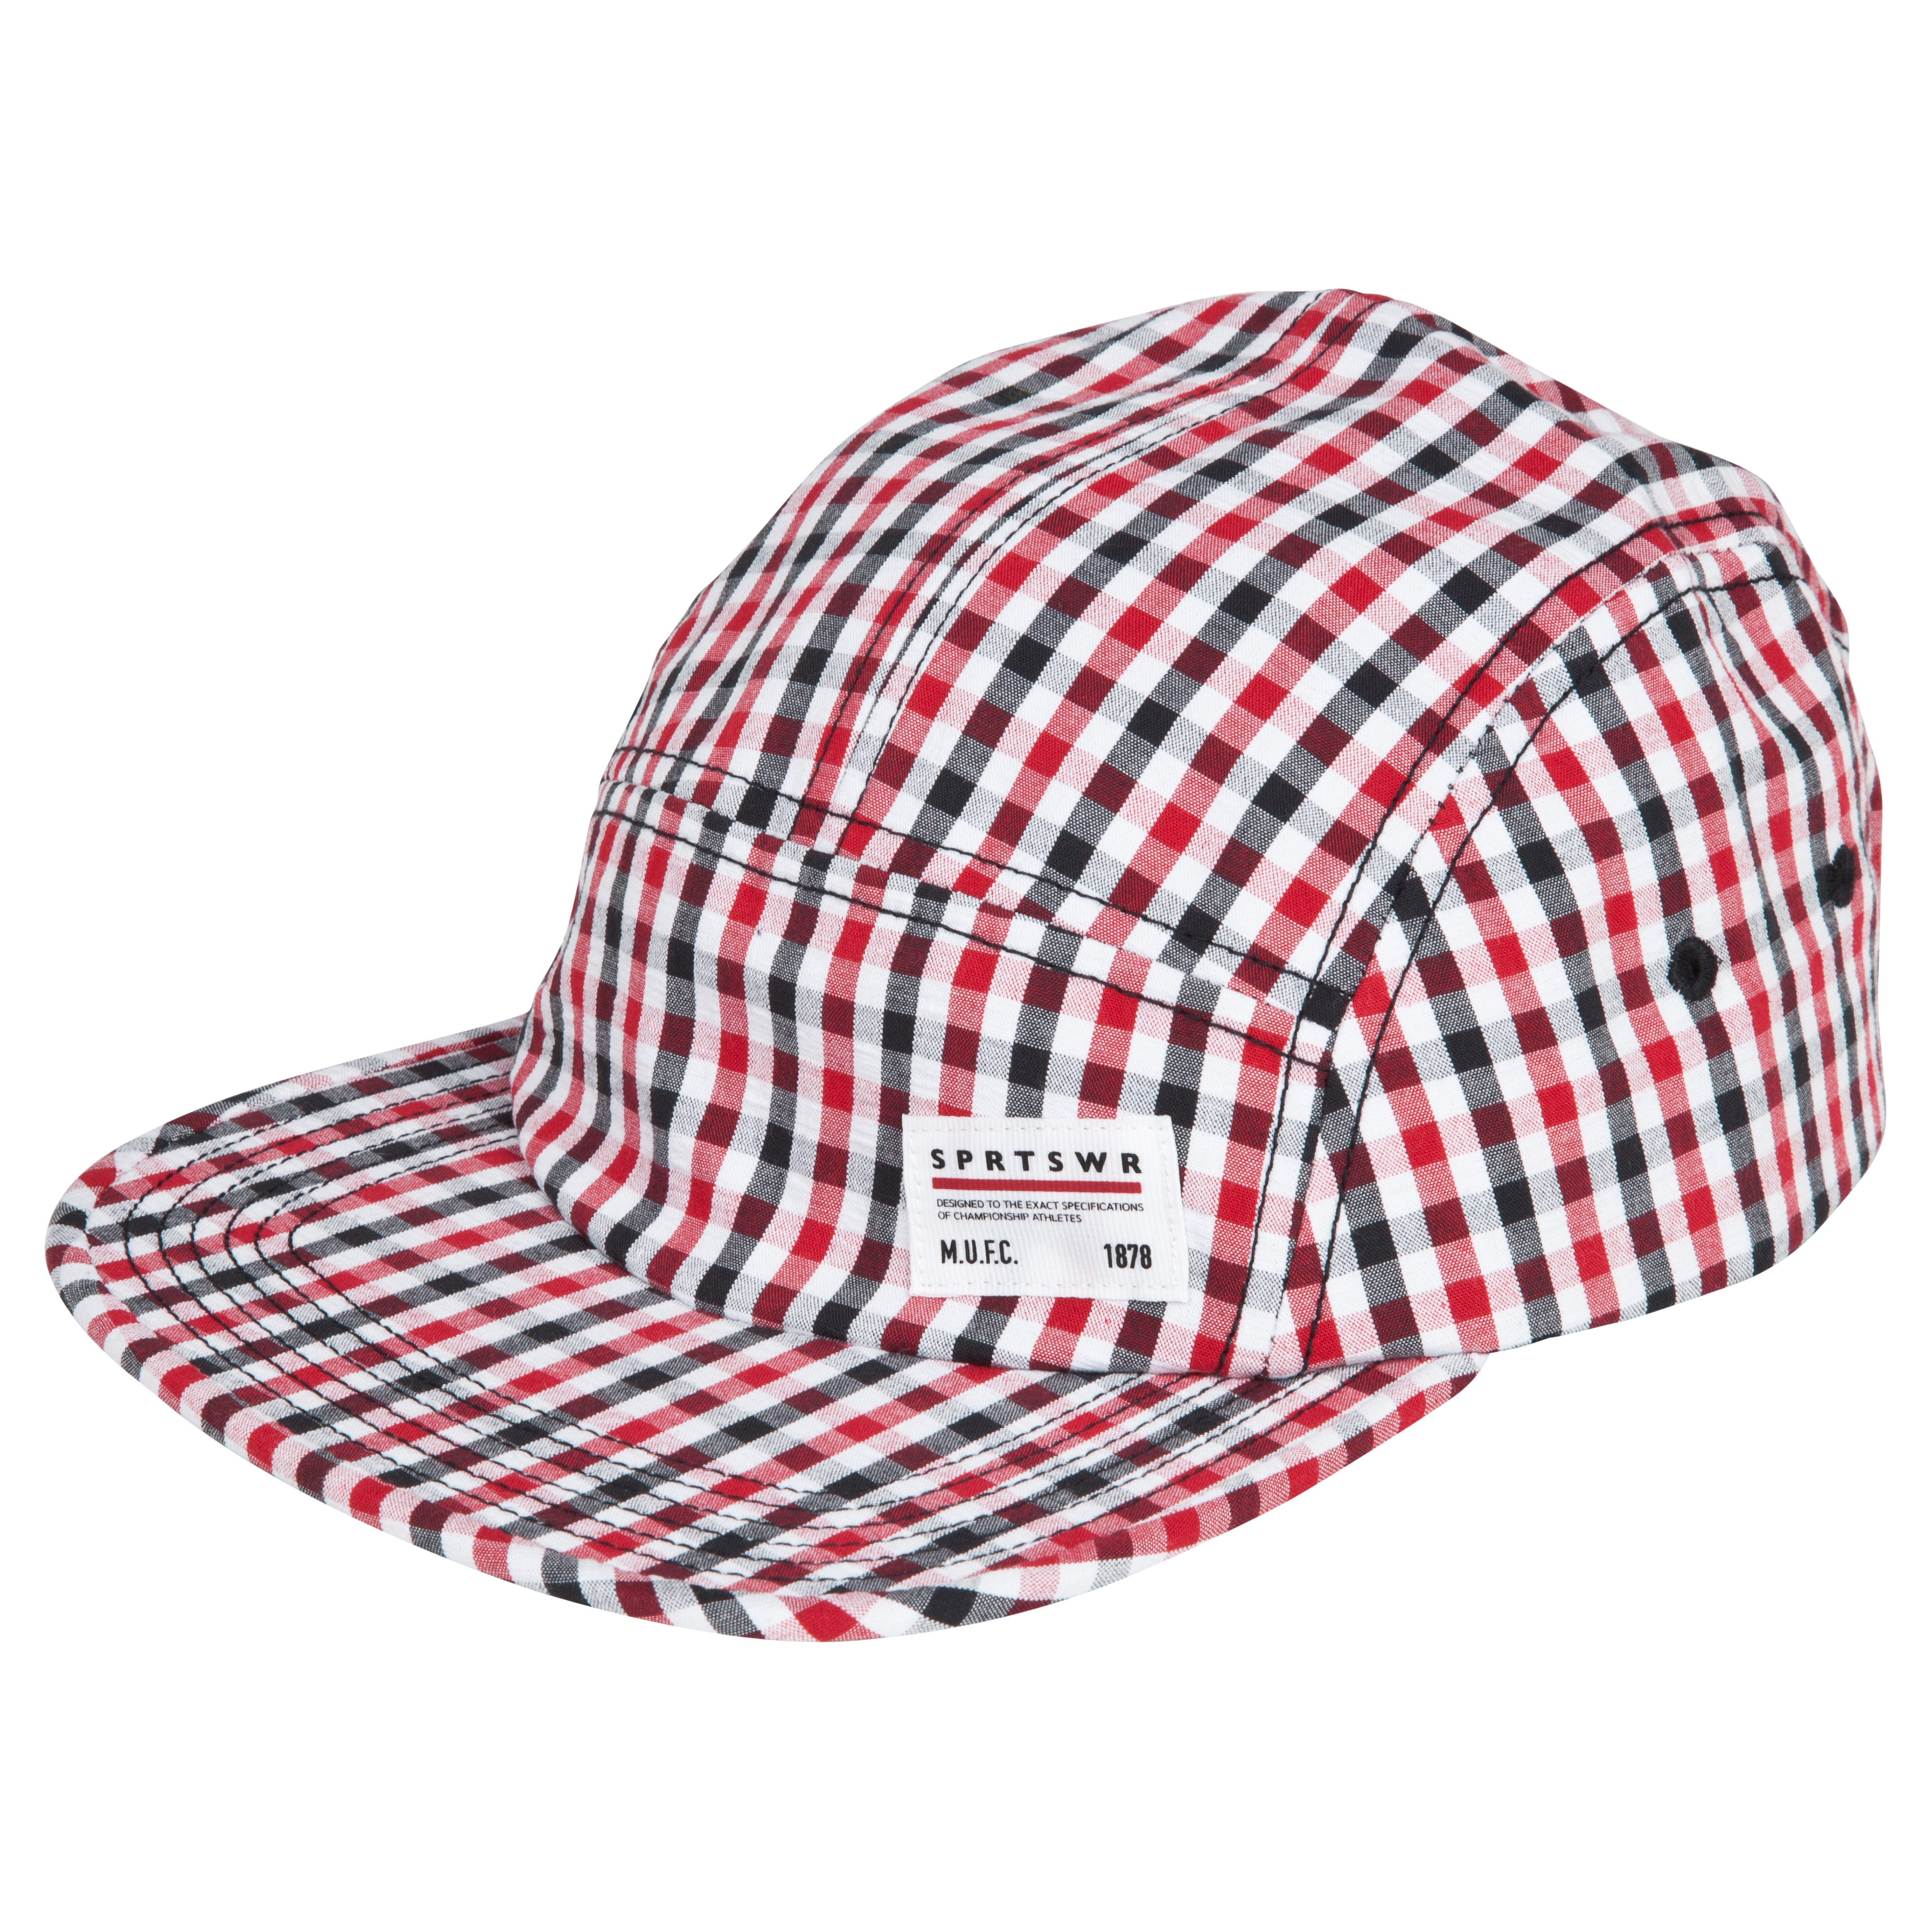 Manchester United Amplify AW84 Cap - White